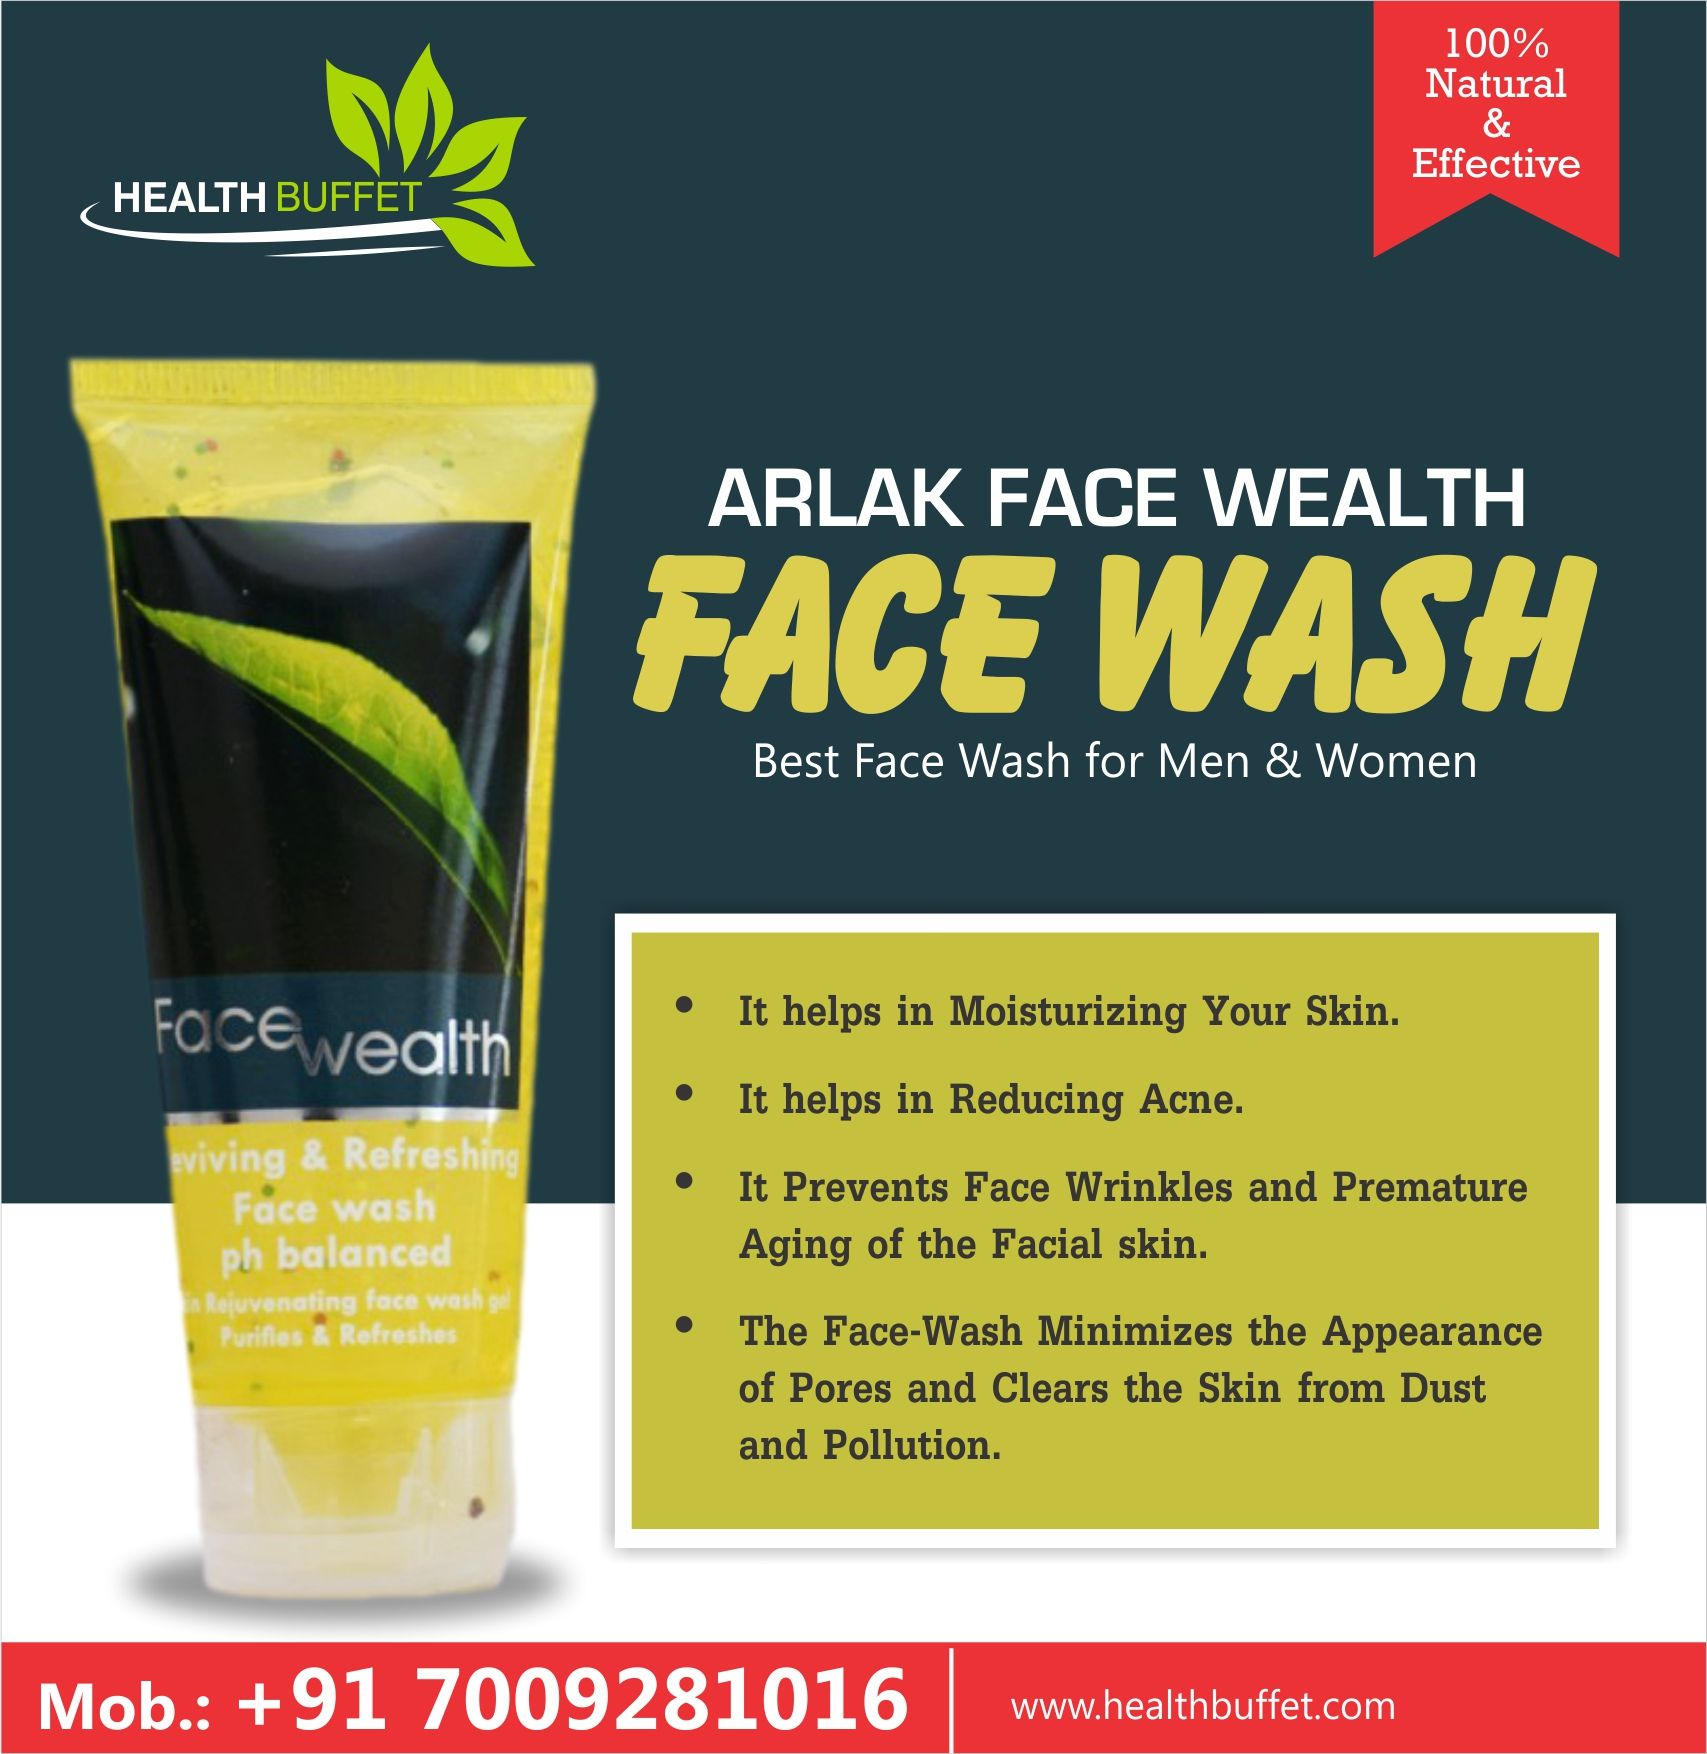 Arlak face wash works best against pimples and acne Available at